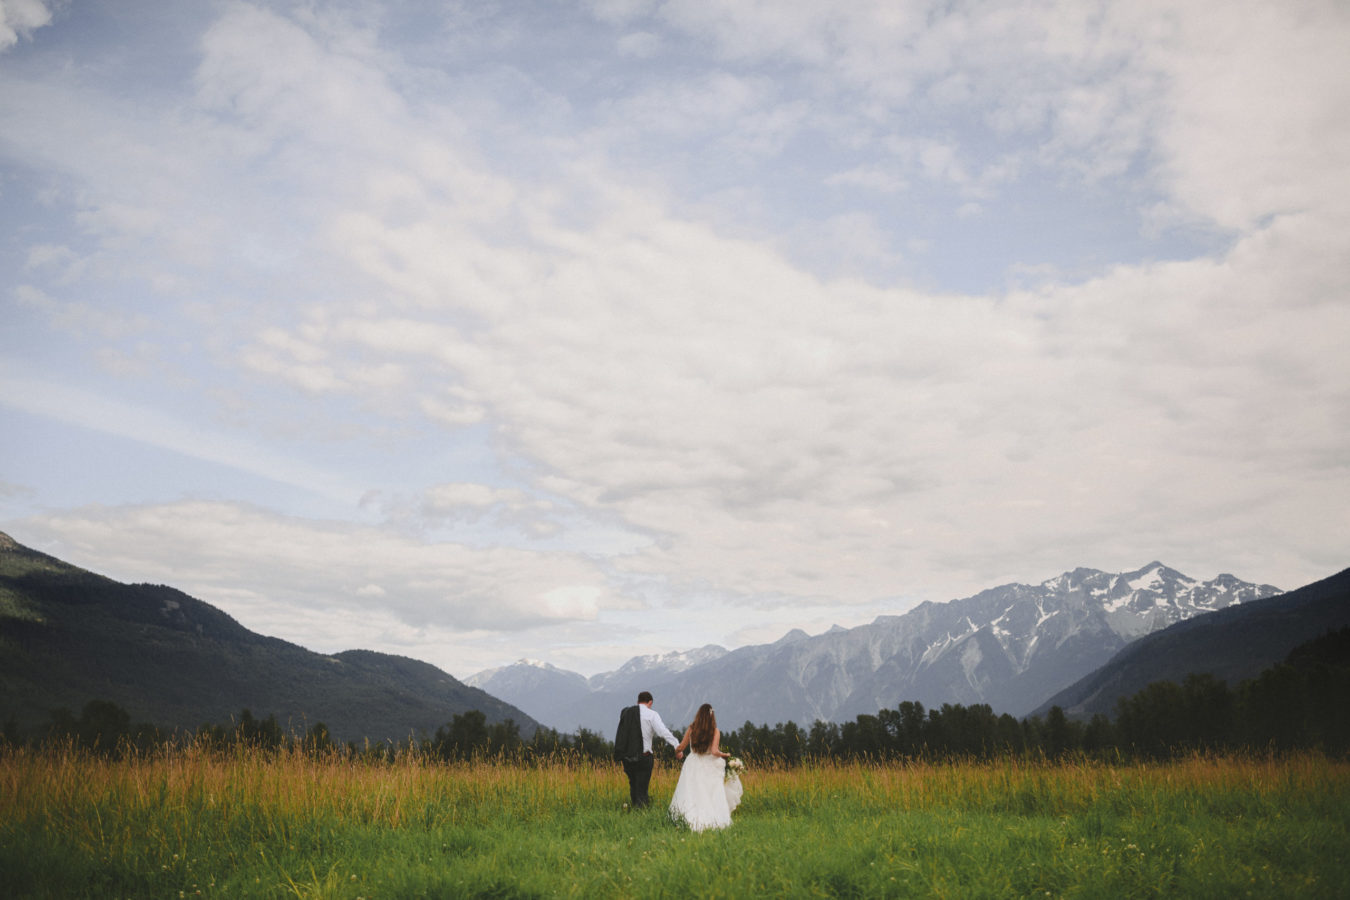 bride and groom walking in a huge field towards the mountains in front of them framed by a big sky